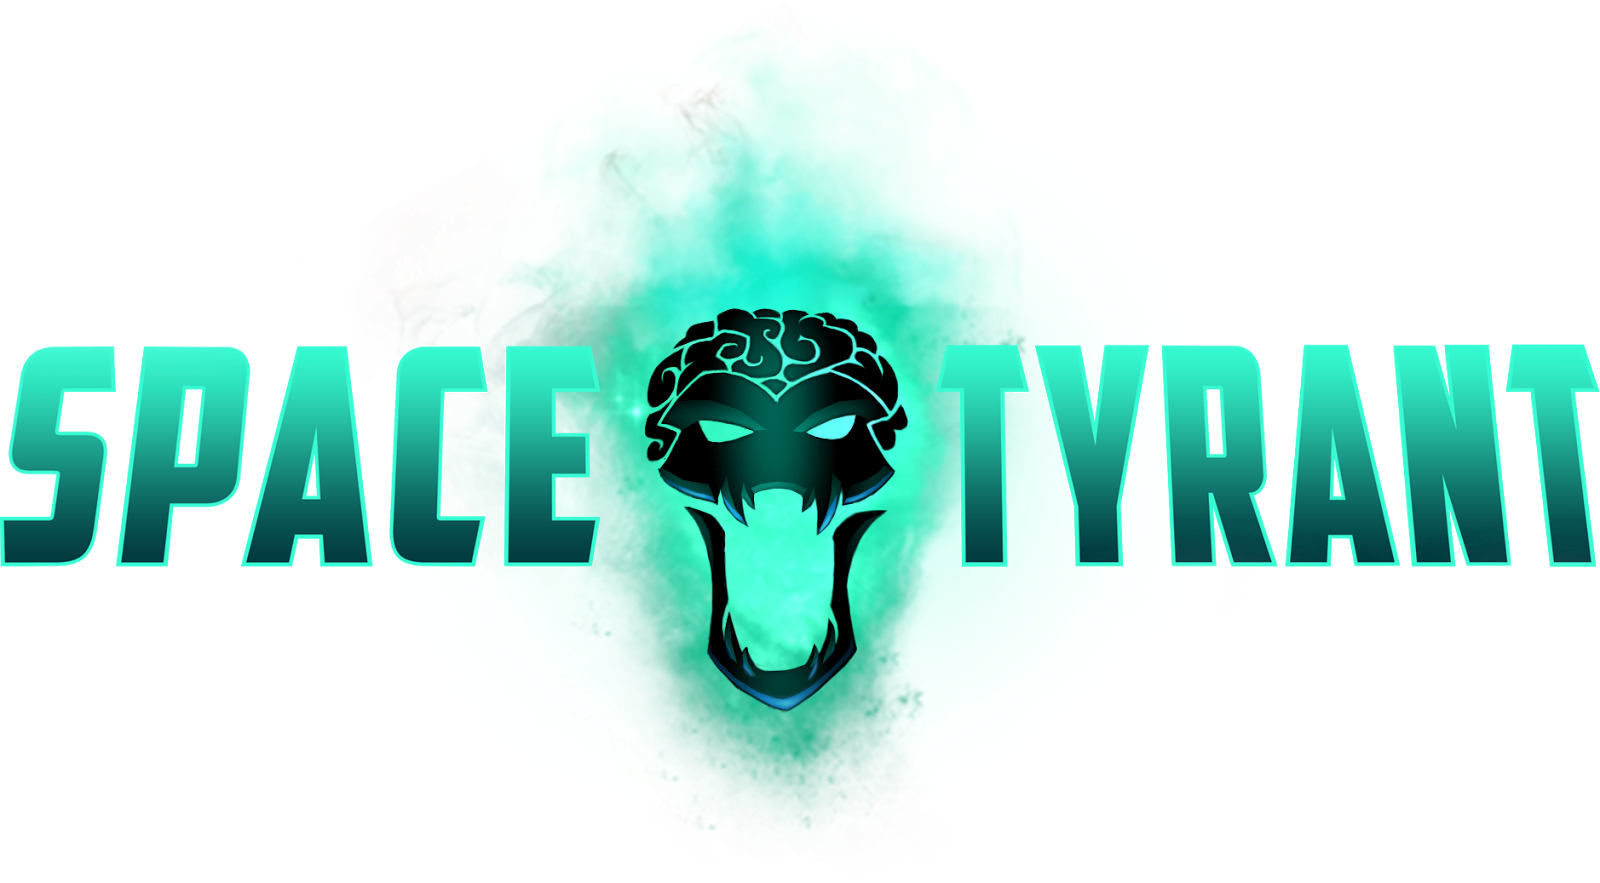 space tyrant first impressions video a wargamers needful things